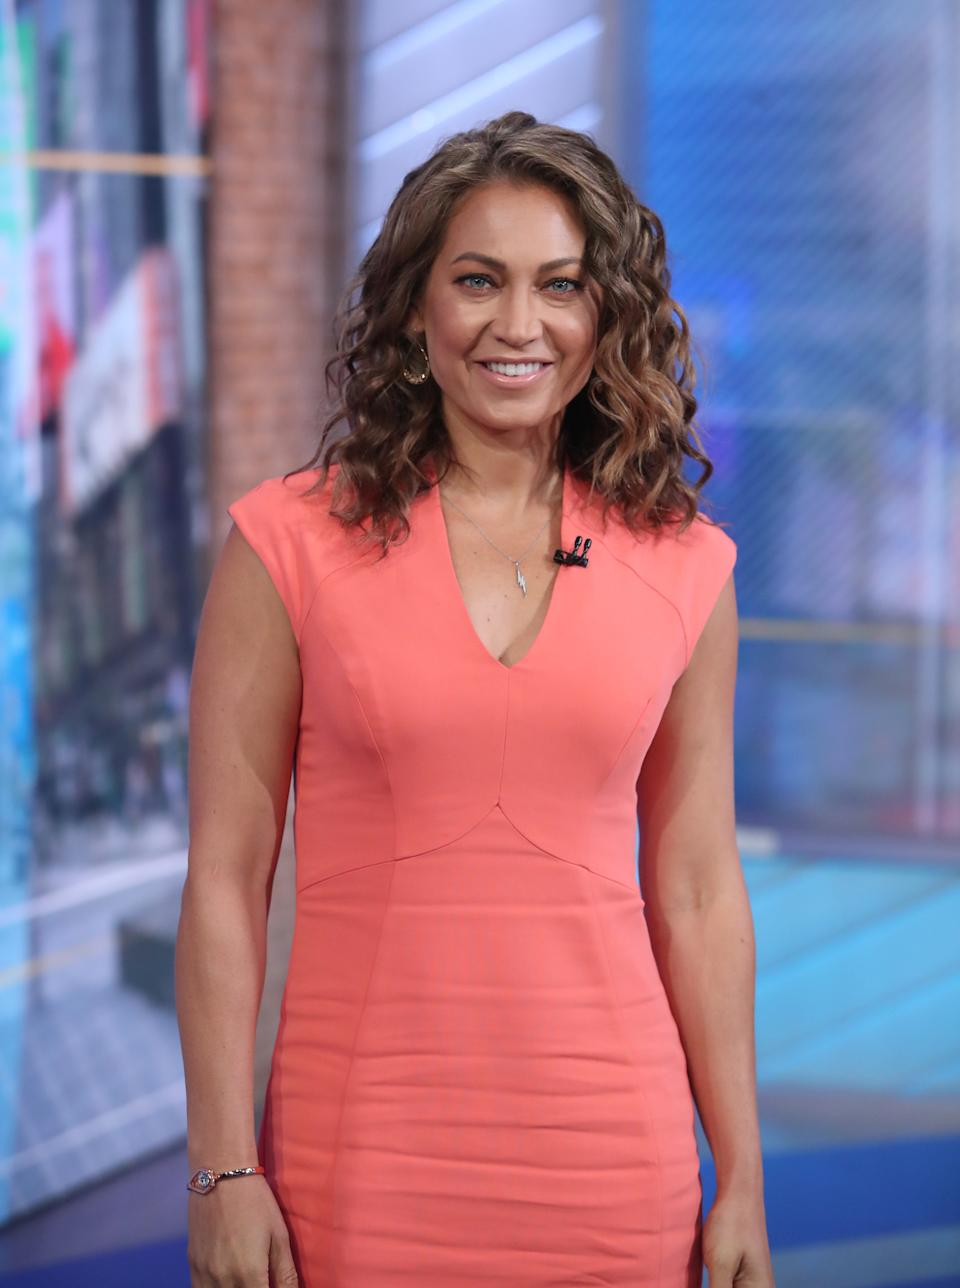 GOOD MORNING AMERICA - 9/7/21 - Good Morning America airs Monday - Friday 7-9am, ET on ABC.   (Photo by Lou Rocco/ABC via Getty Images)  GINGER ZEE